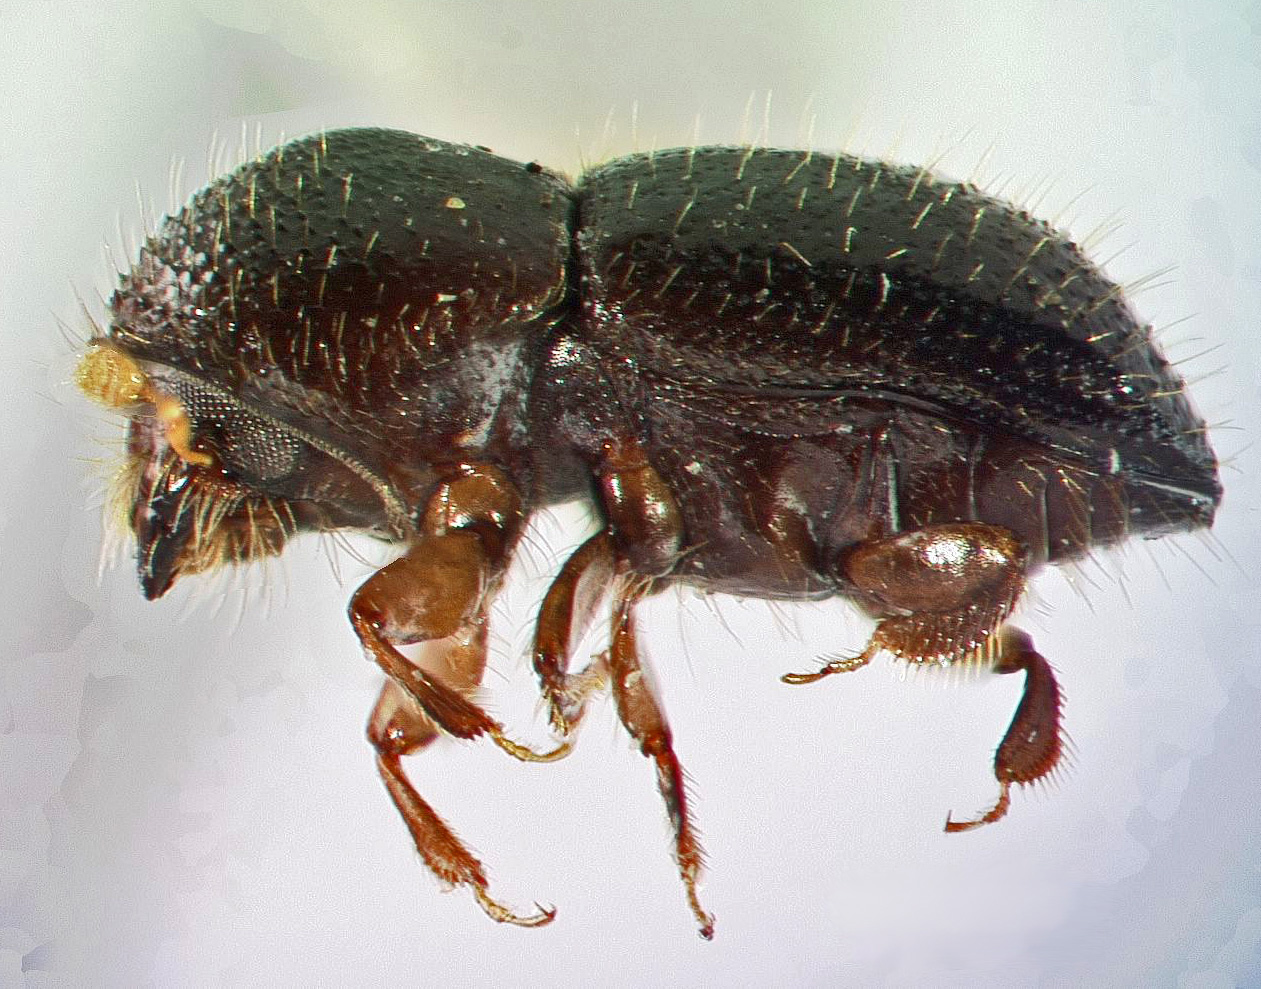 Tree-killing bug invades Southern California